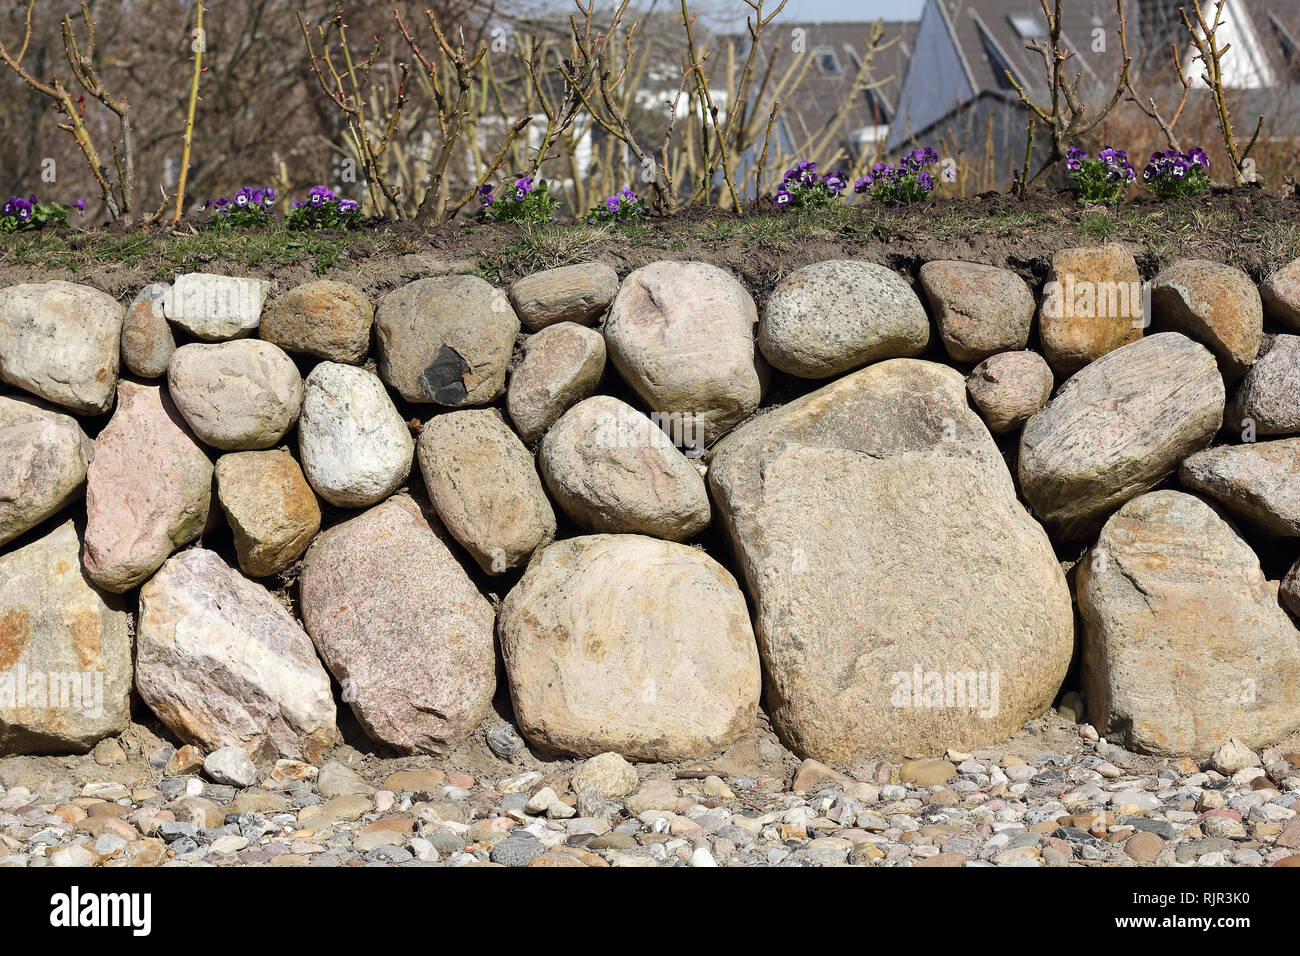 Frisian stone wall with pansies - Stock Image